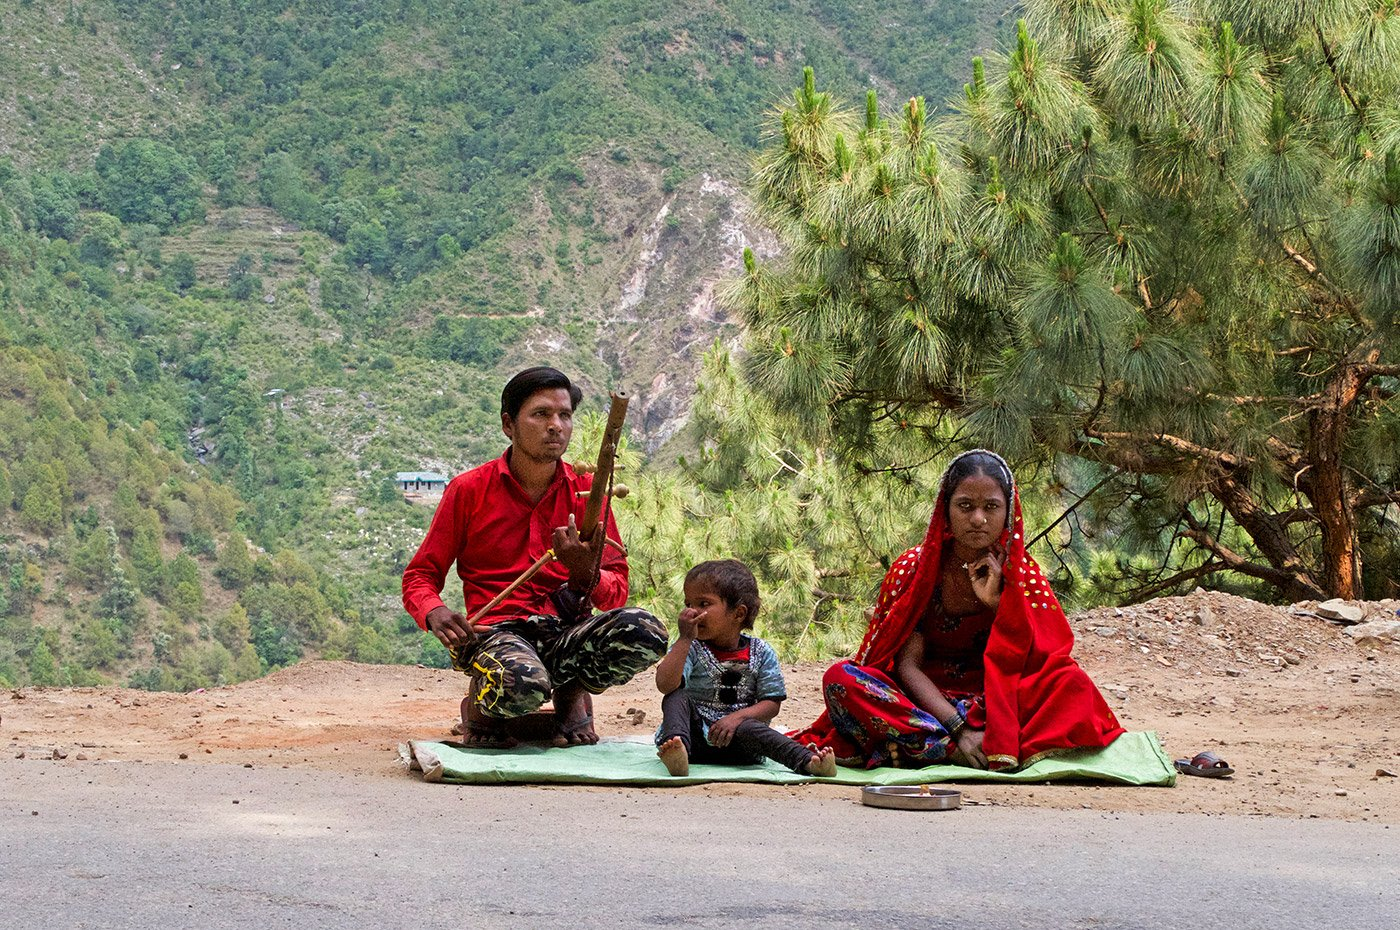 A man and his wife sitting on the side of the road in the moutains. the man is holding an instrument called ravanahatha in his hands